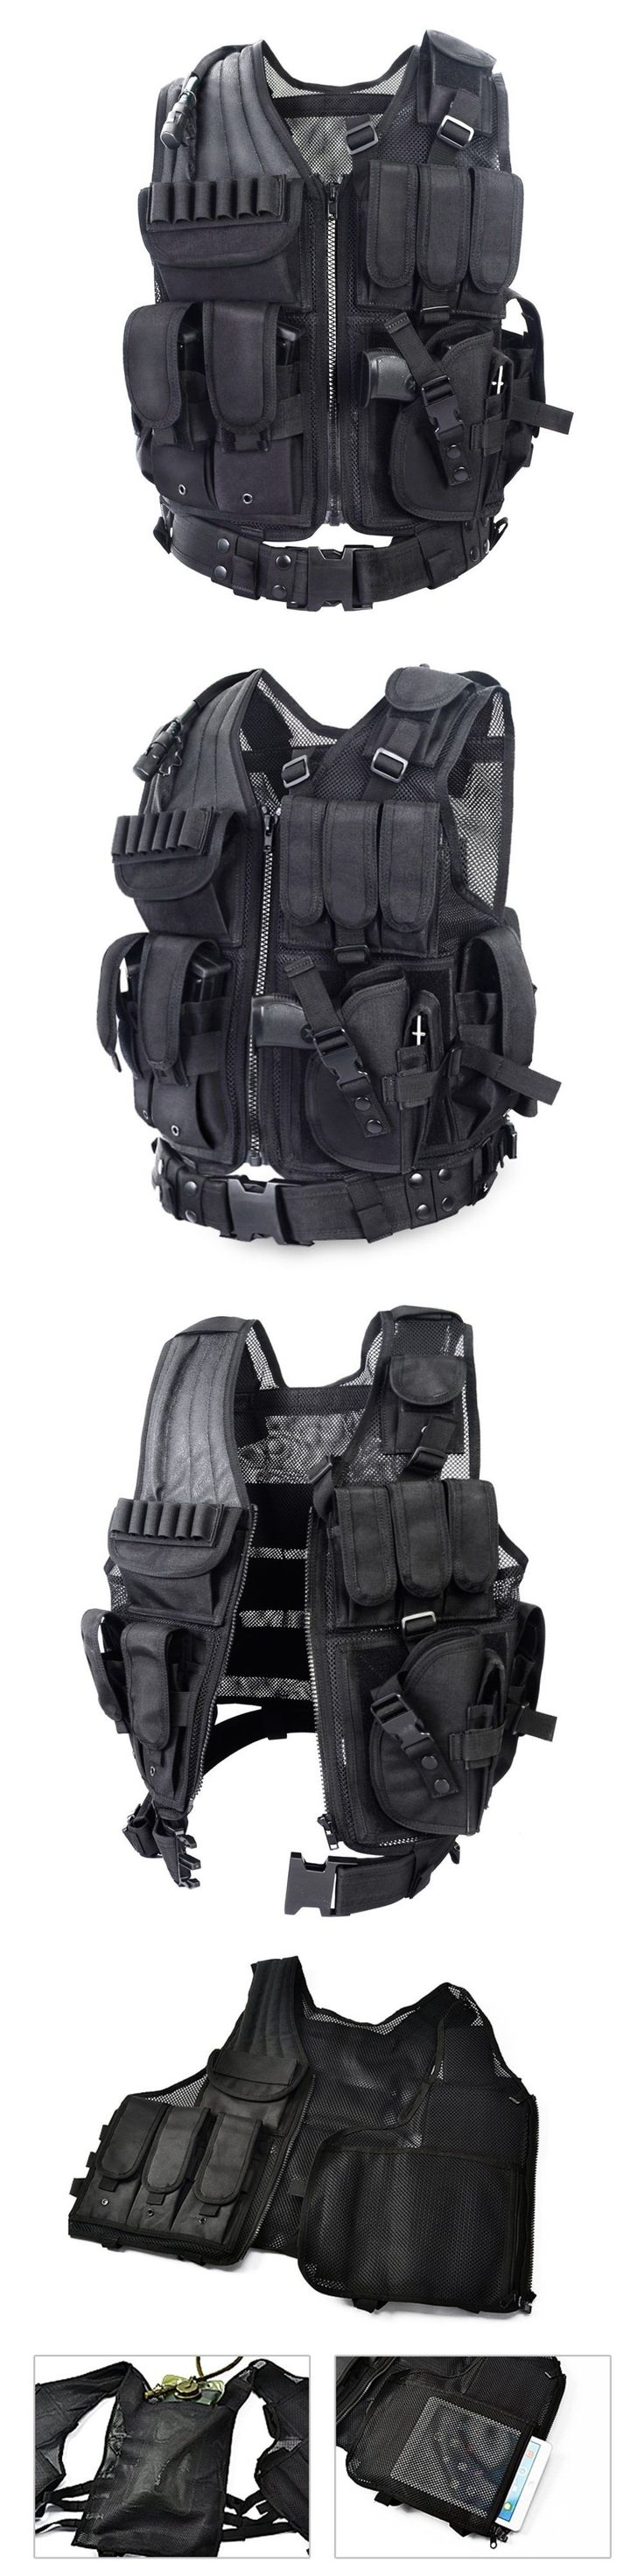 Chest Rigs and Tactical Vests 177891: Yakeda - Tactical Swat Police Military Hunting Survival Scenario Vest Body Armor -> BUY IT NOW ONLY: $43.88 on eBay!